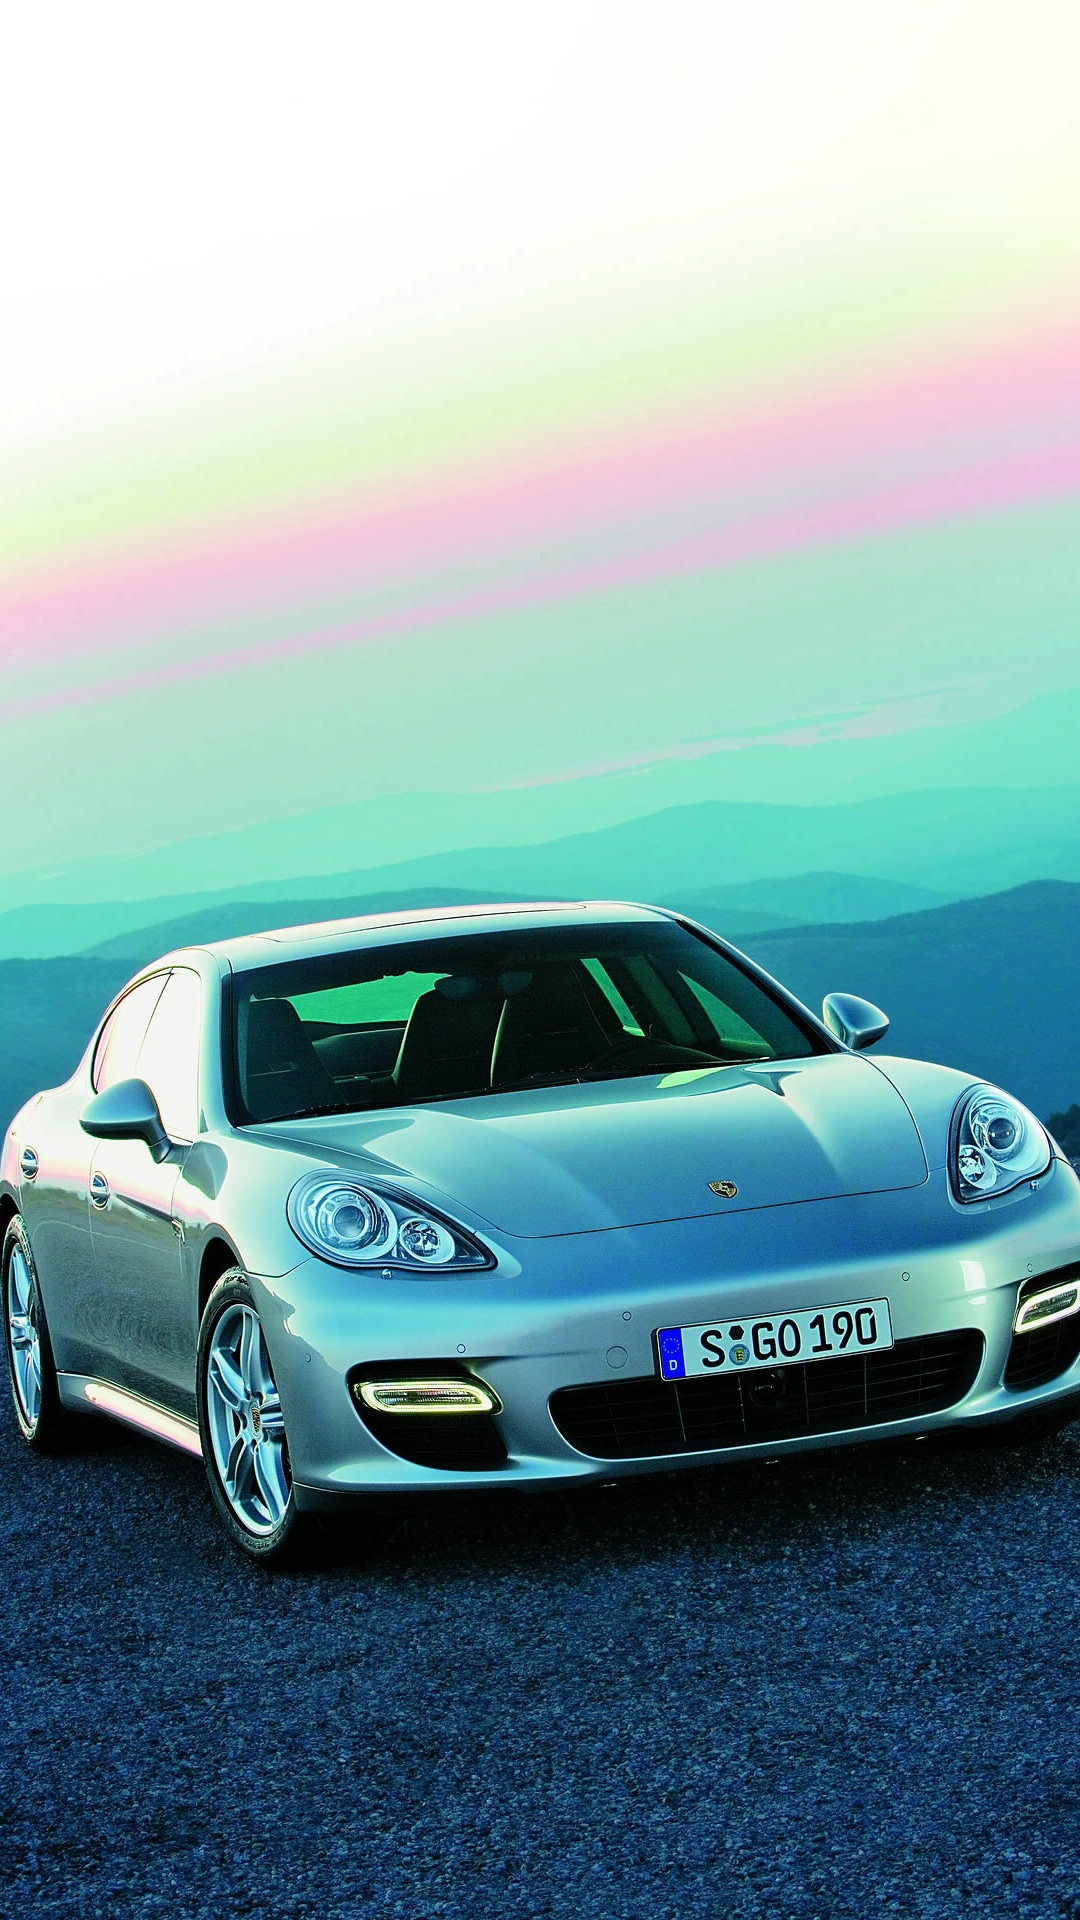 porsche recalls 18k panameras cayennes for bad camshafts adjusters